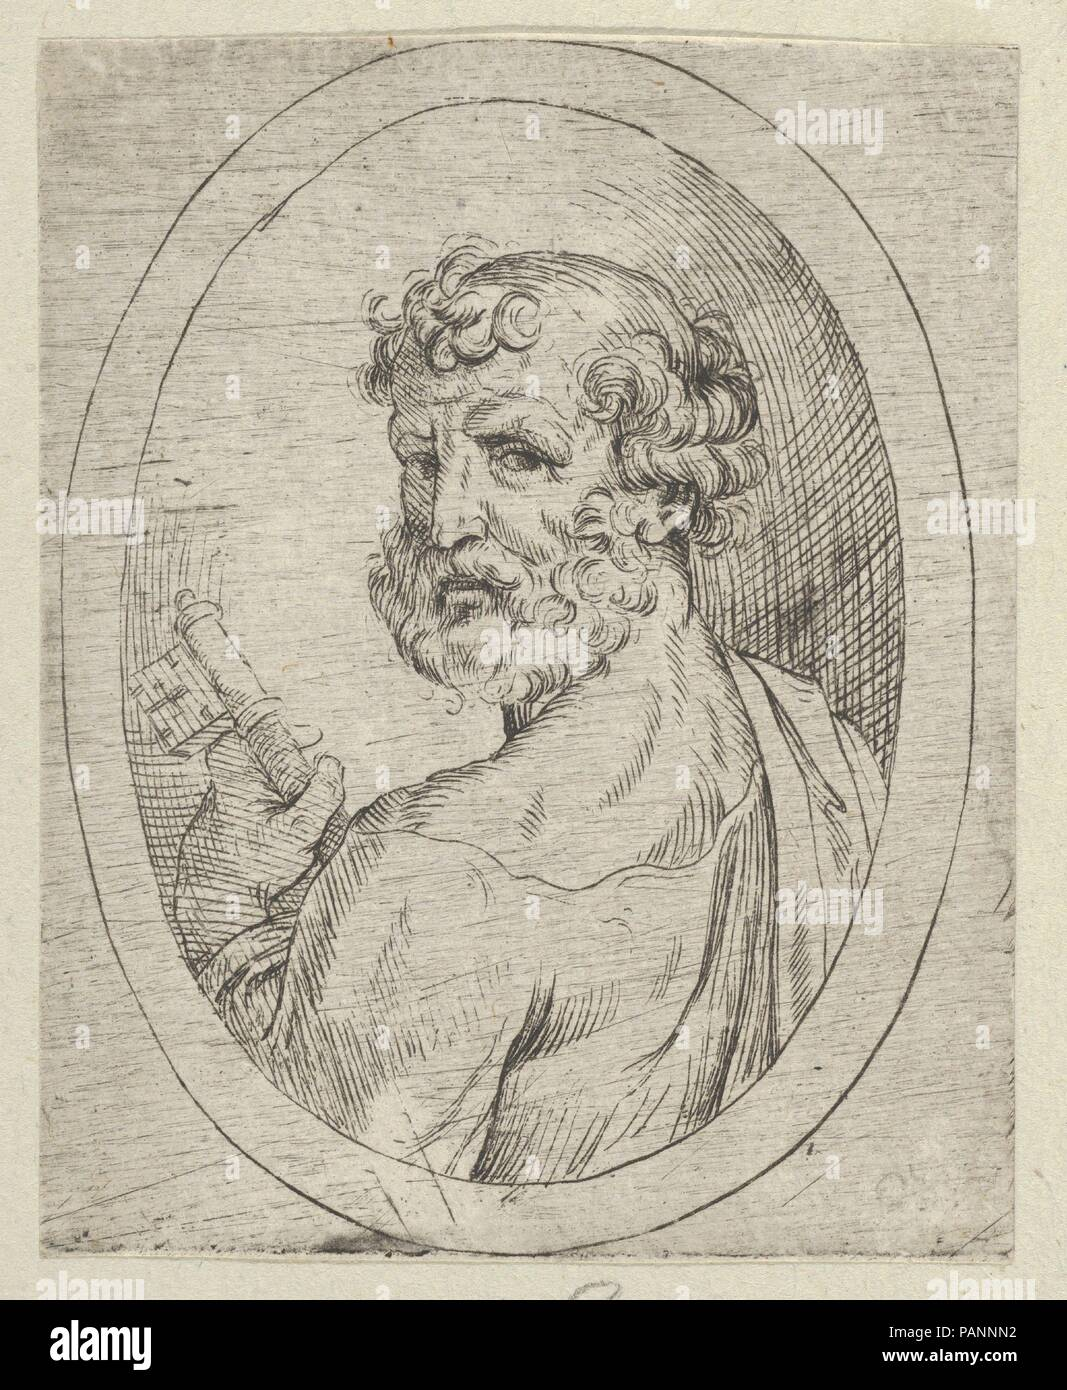 Saint Peter seen from behind, turning to face outwards and holding a ...